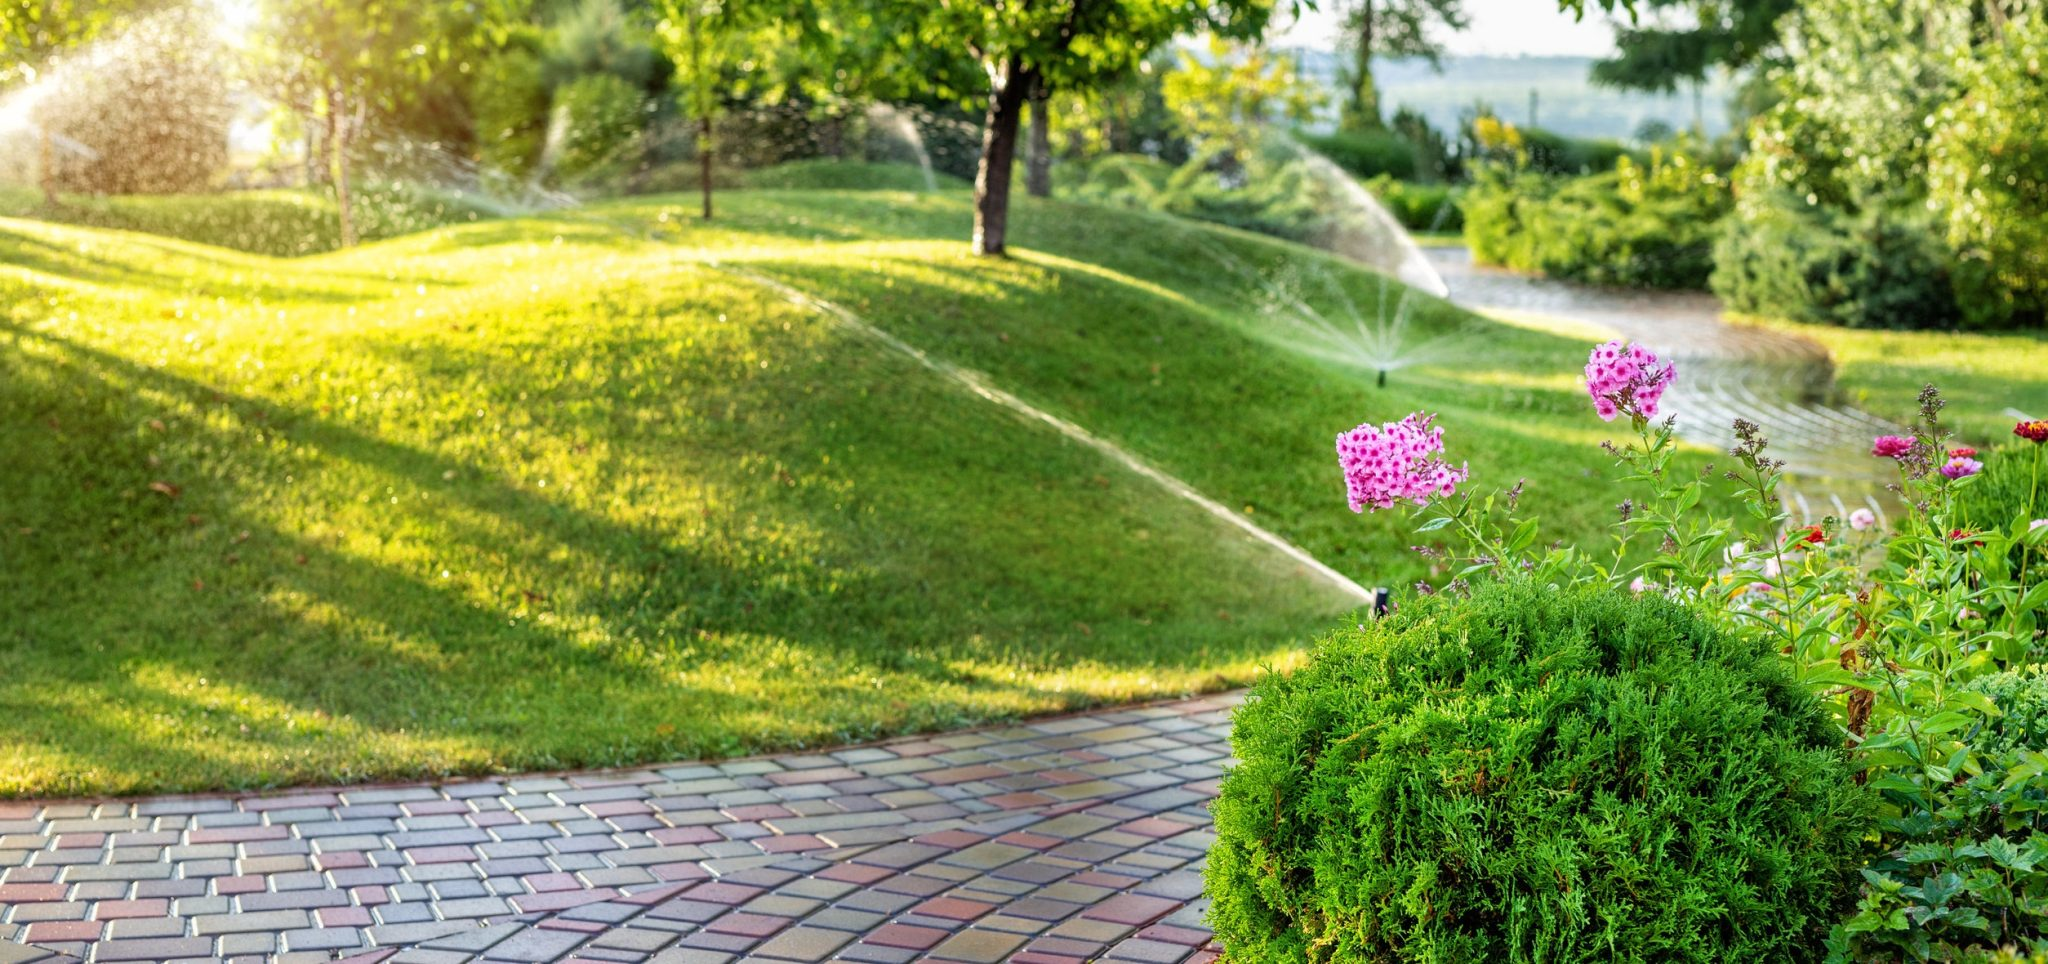 Automatic sprinkler system watering a lawn